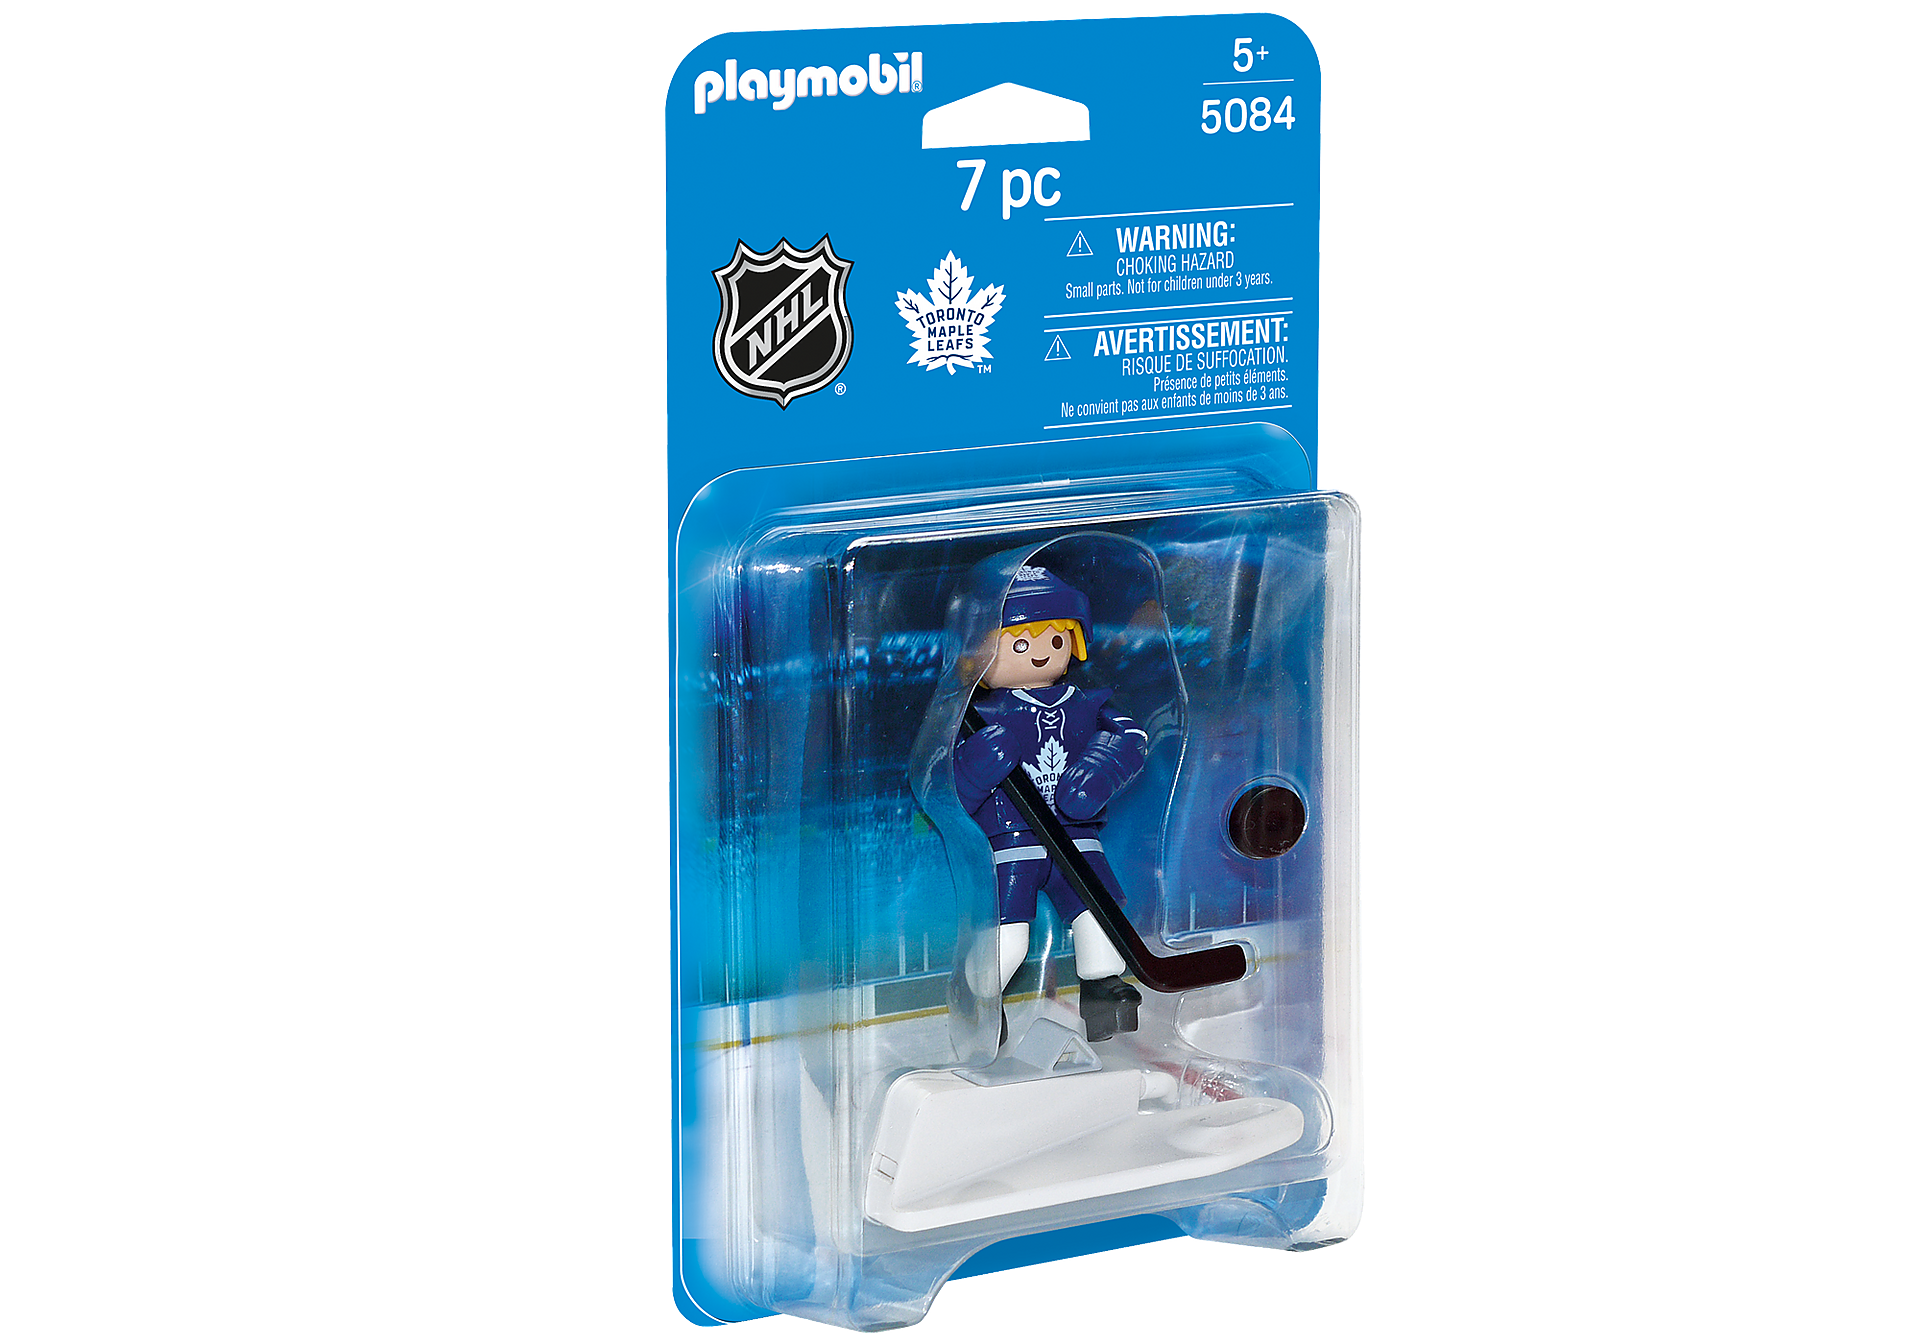 5084 NHL™ Toronto Maple Leafs™ Player zoom image2